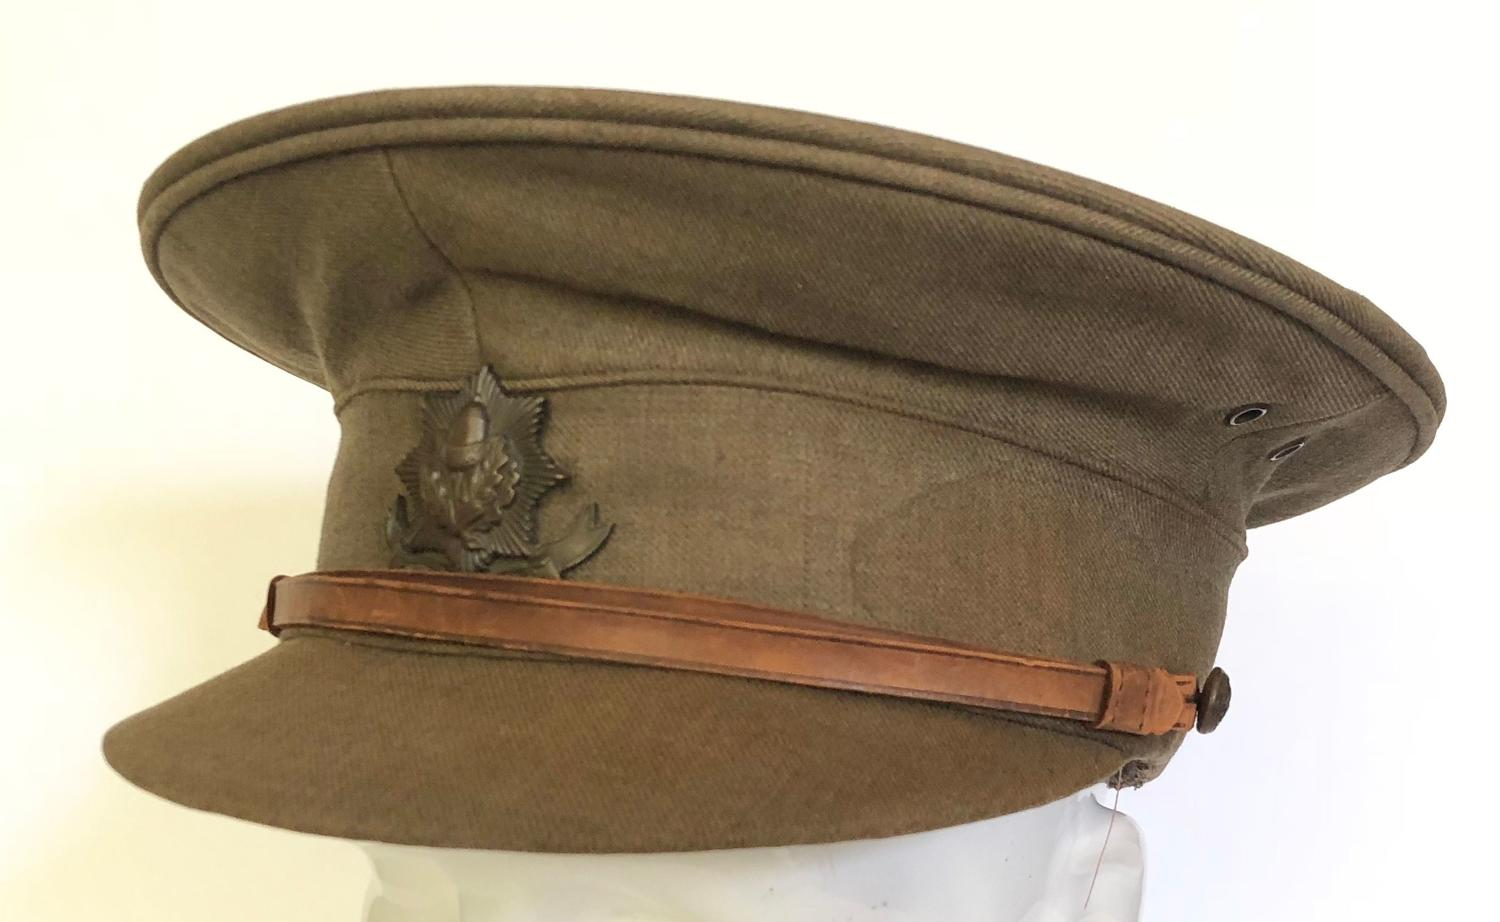 WW1 Cheshire Regiment Officer's Cap.